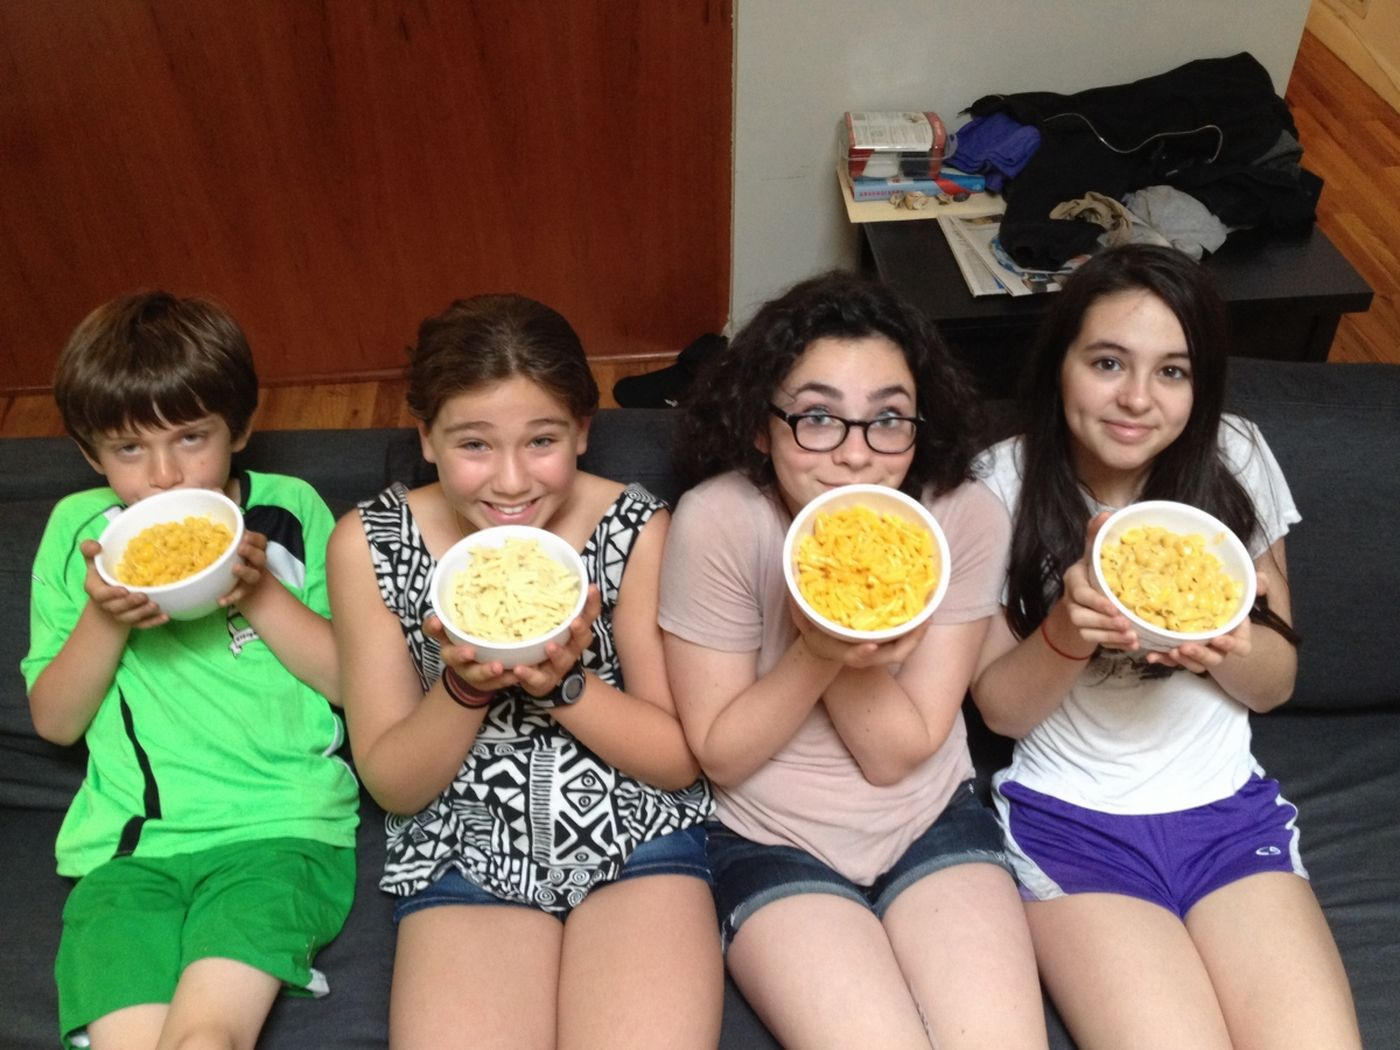 Kids with mac and cheese